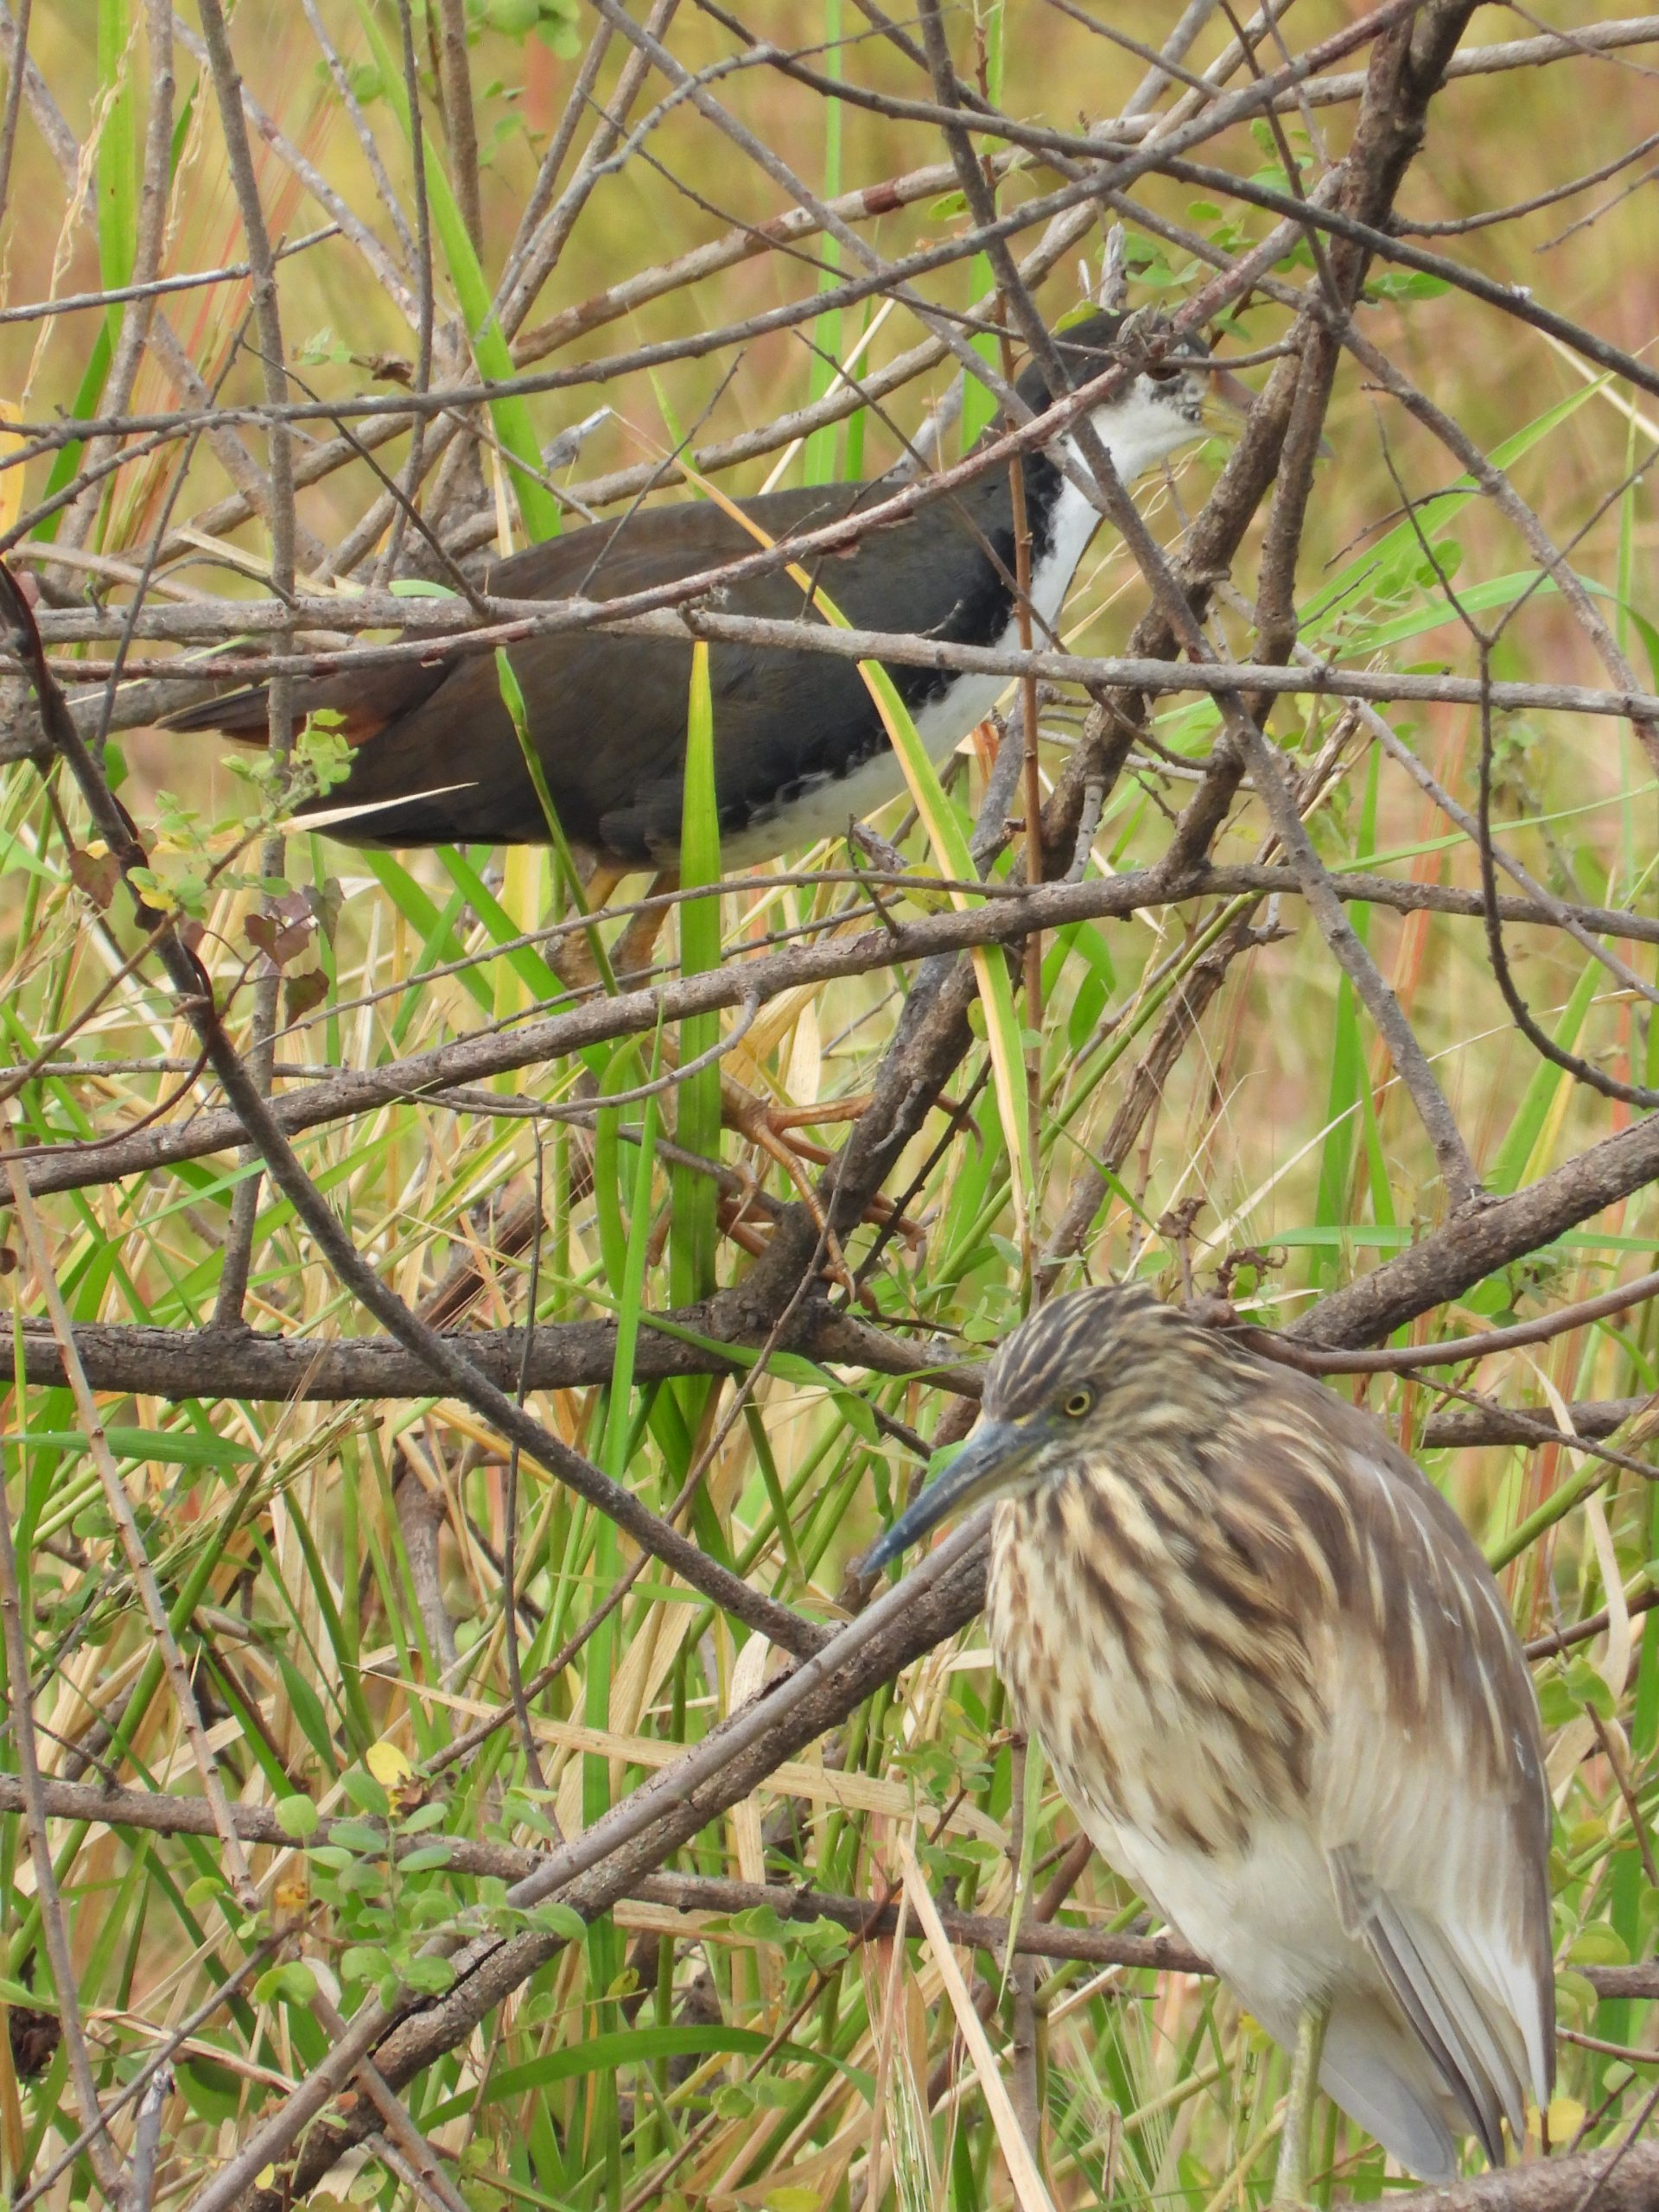 White-breasted waterhen and Pond Heron